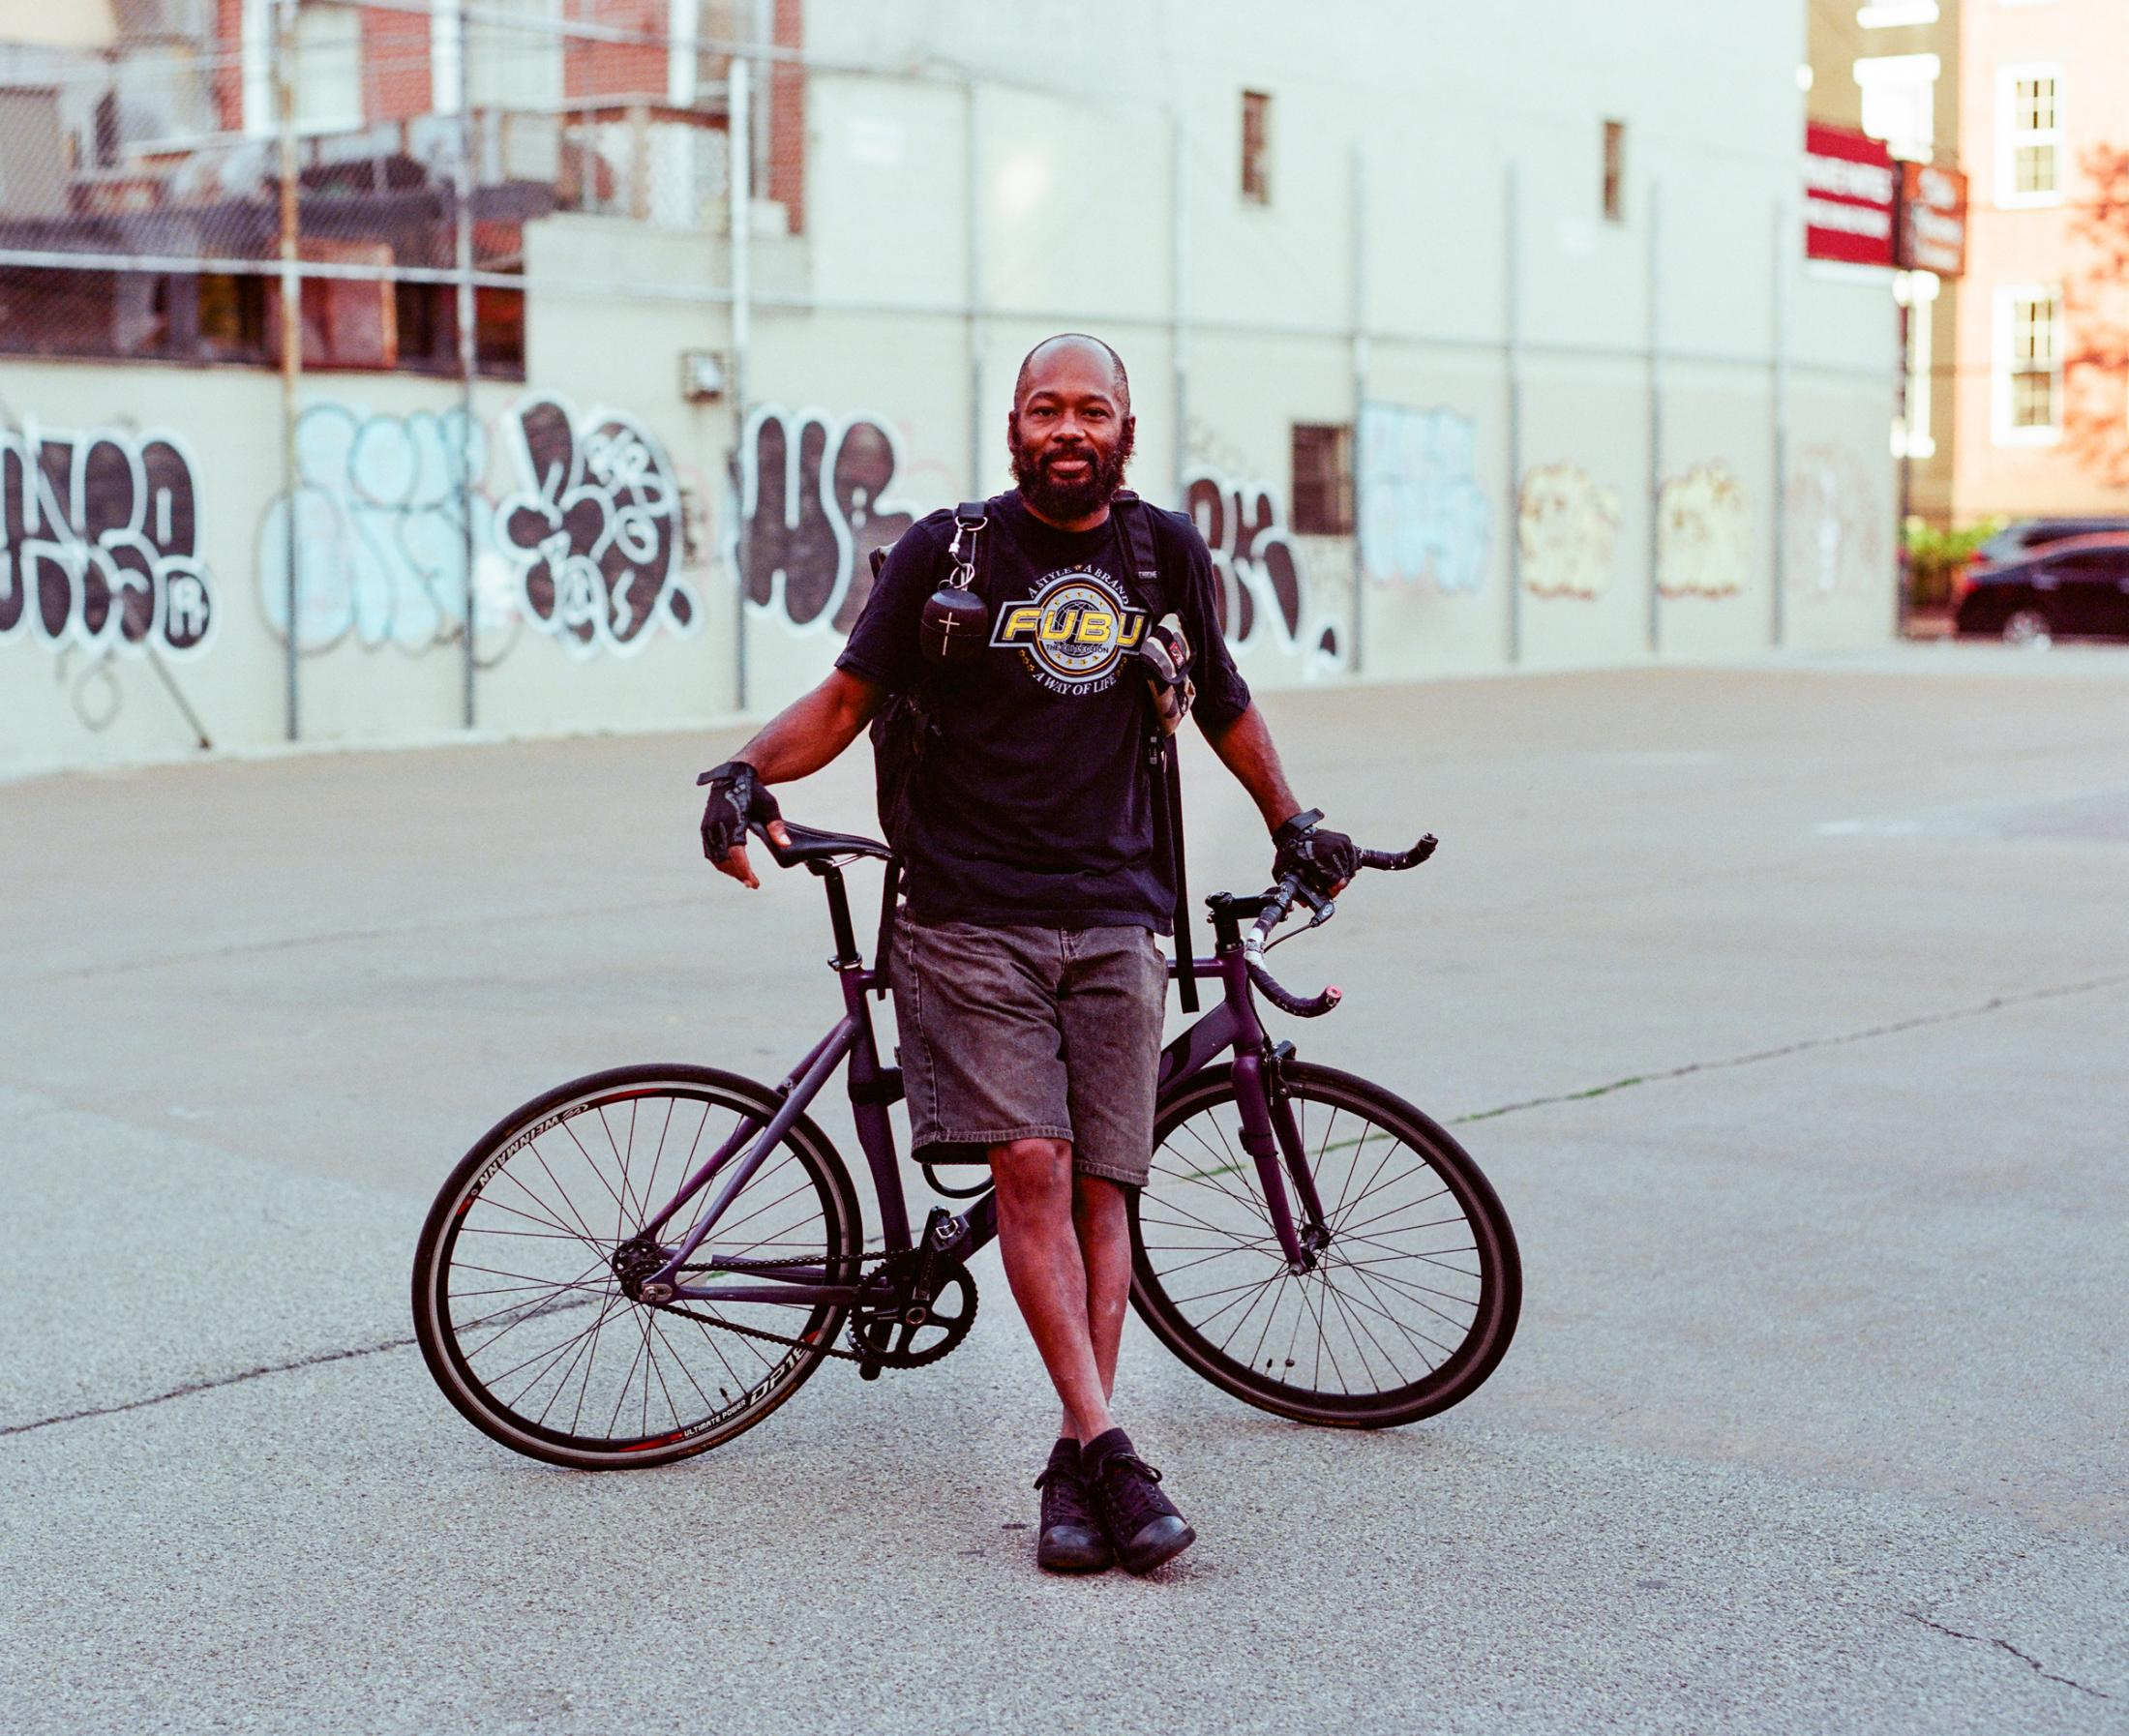 Usef Campbell on September 27, 2019 in NYC. Photo essay on Bike Messengers.